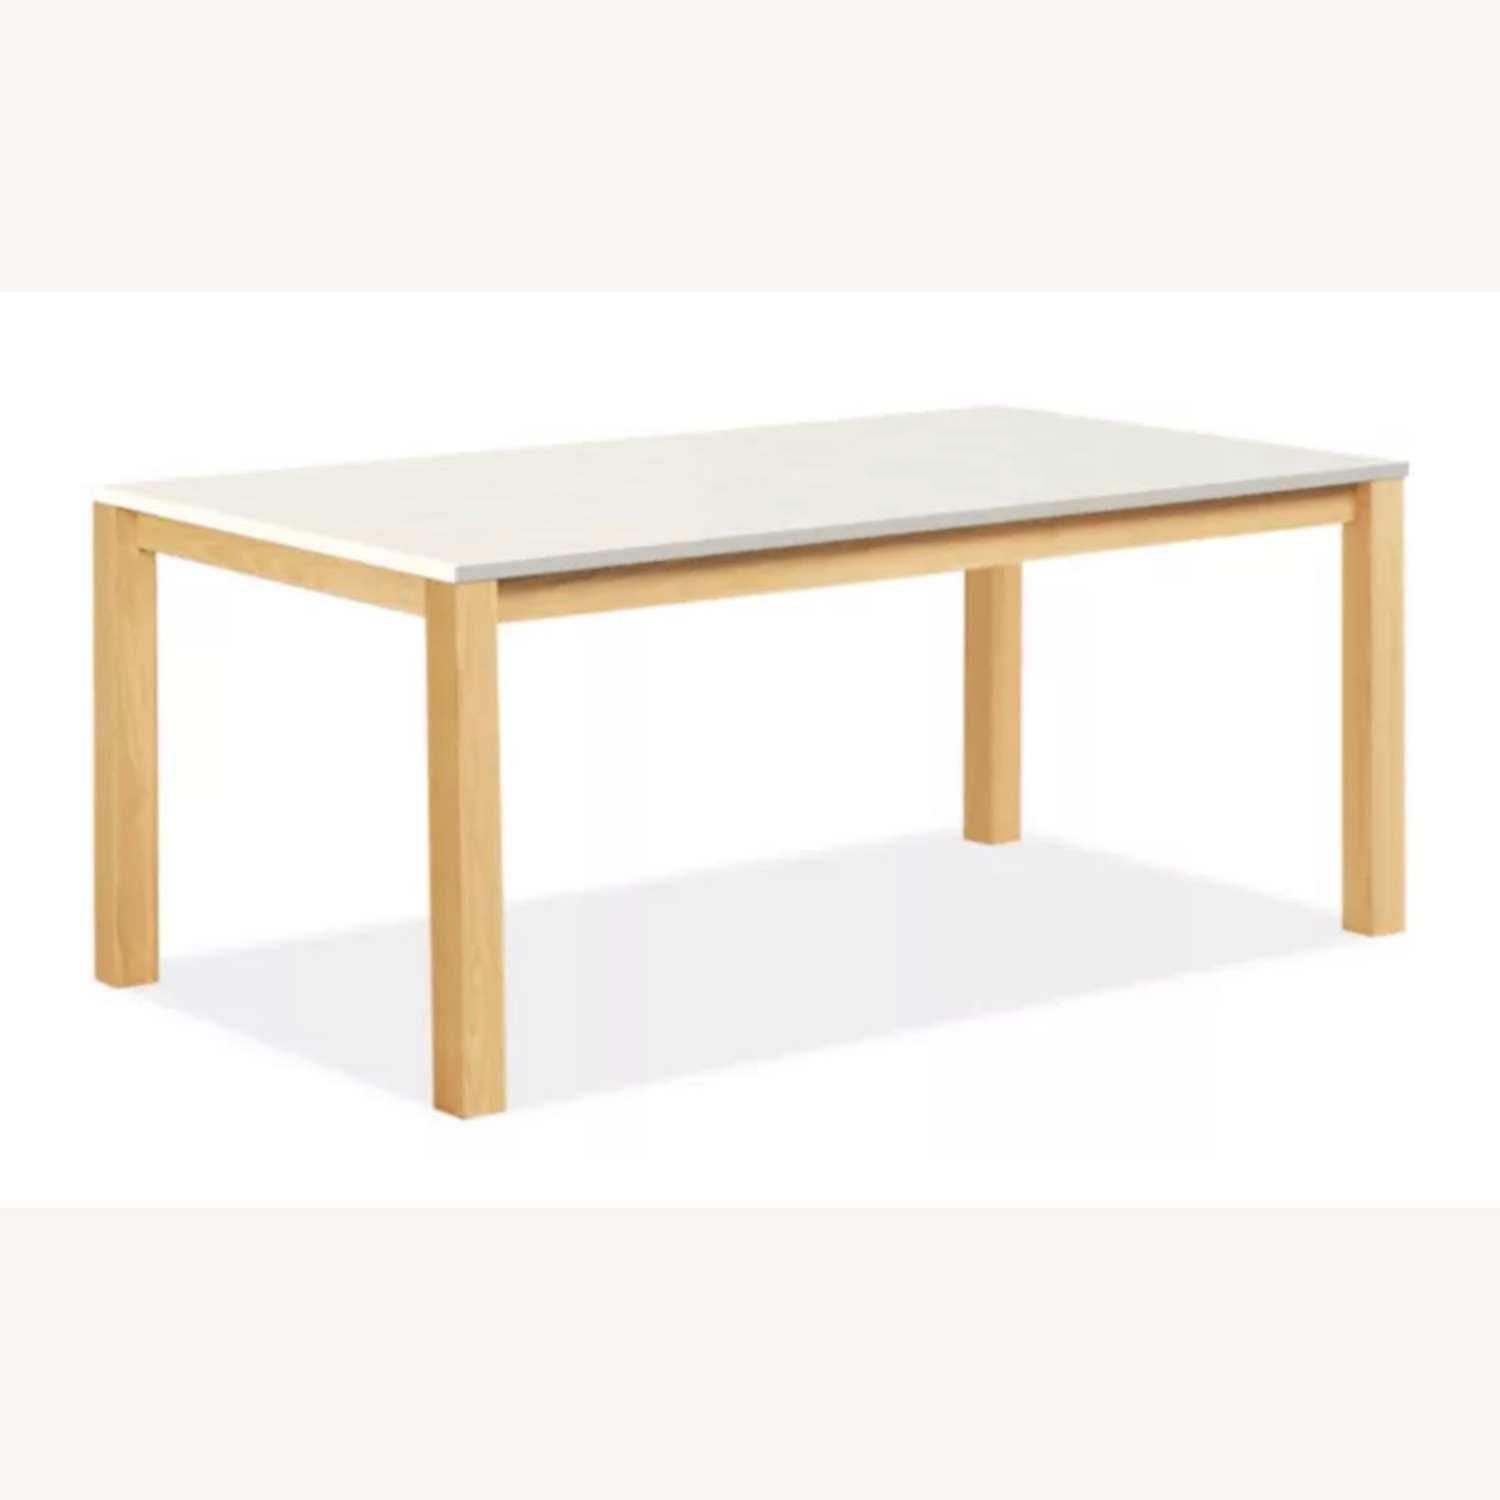 Room & Board White Quartz Top Linden Dining Table - image-0